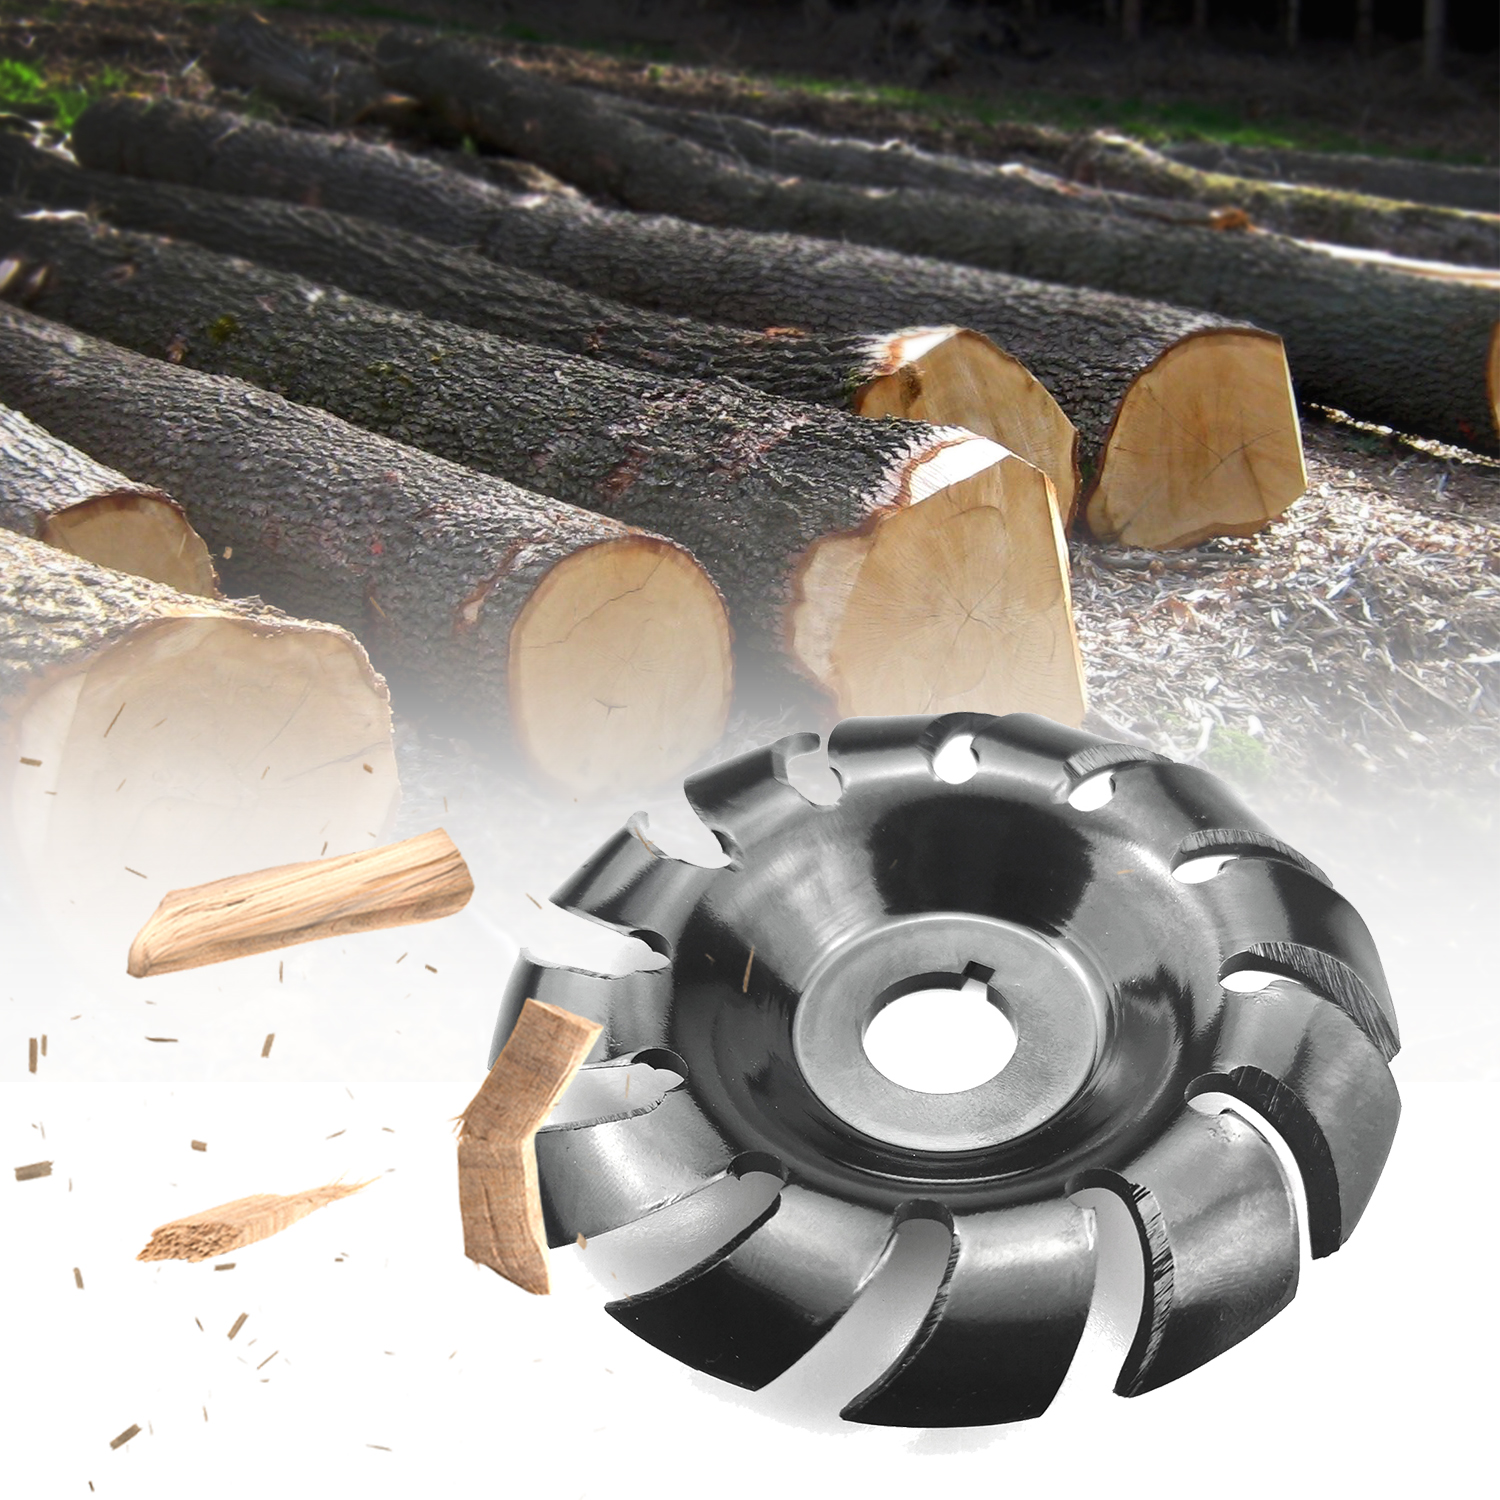 Manganese Steel 90mm 12 Teeth Wood Carving Disc 16mm Bore Grinder Shaping Disc for 100 115 Angle Grinder Woodworking Tools